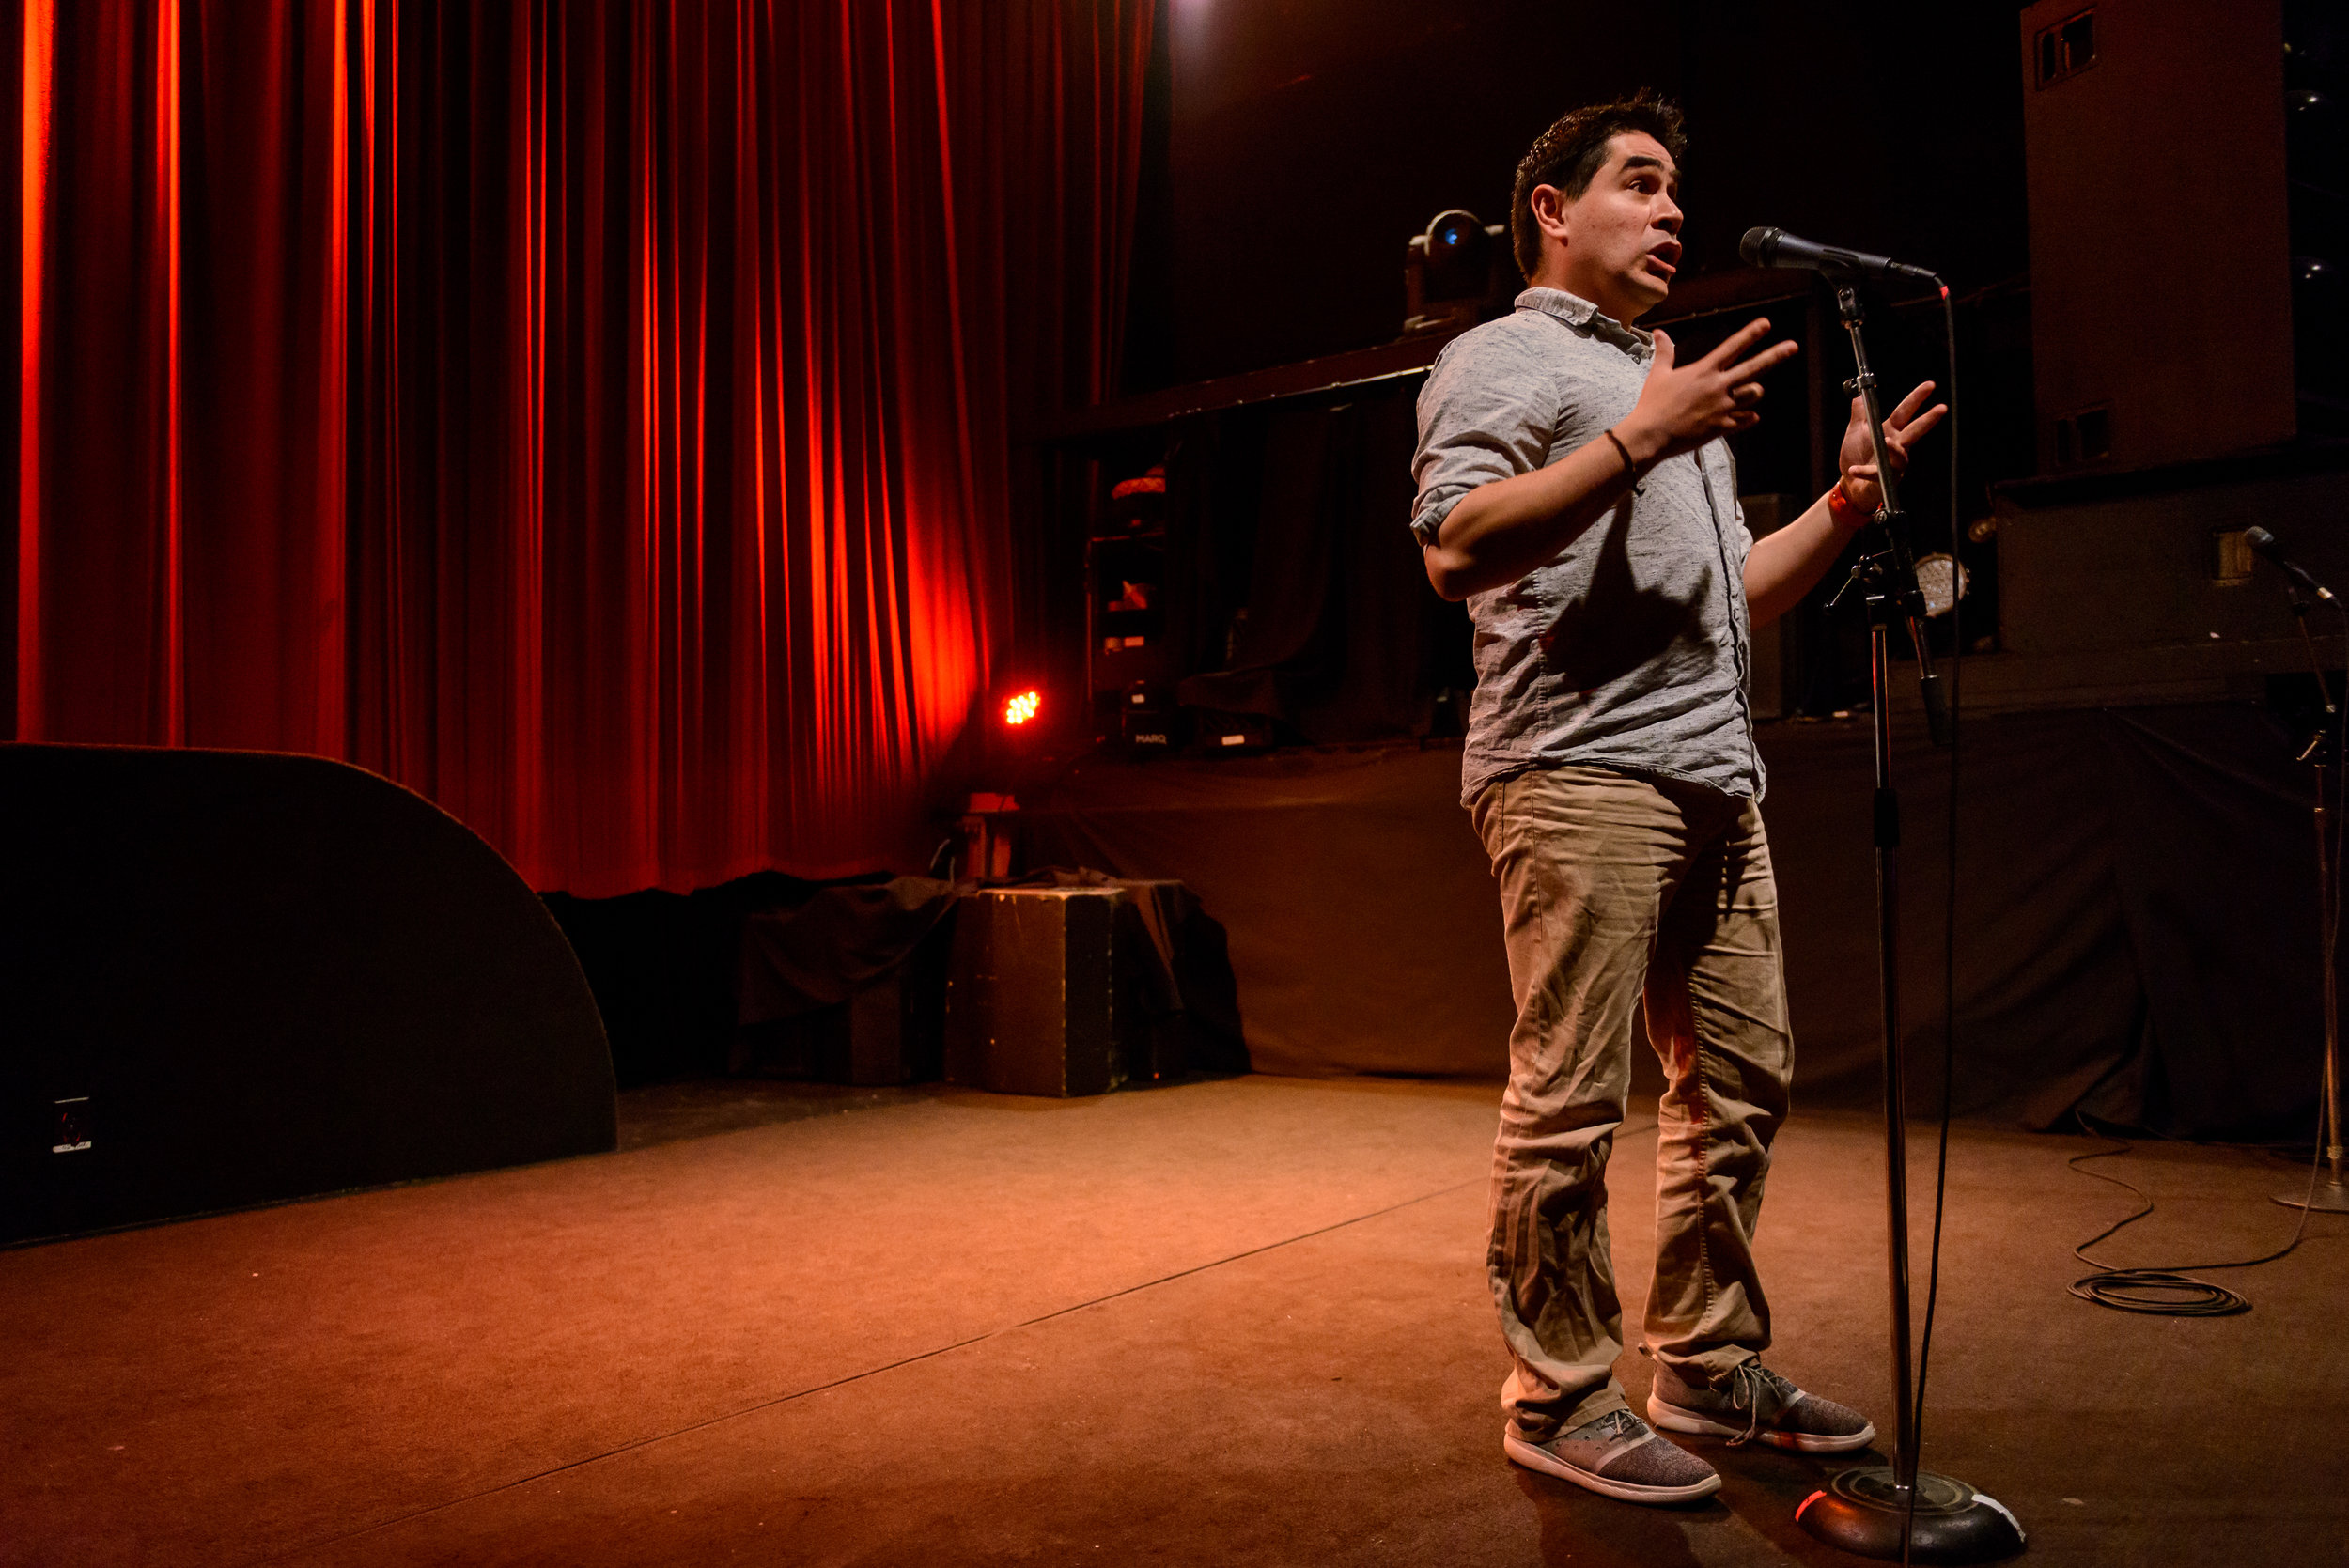 Rodrigo Solis shares his story with the Story Collider audience at Fox Cabaret in Vancouver, BC in April 2019. Photo by Rob Felt.